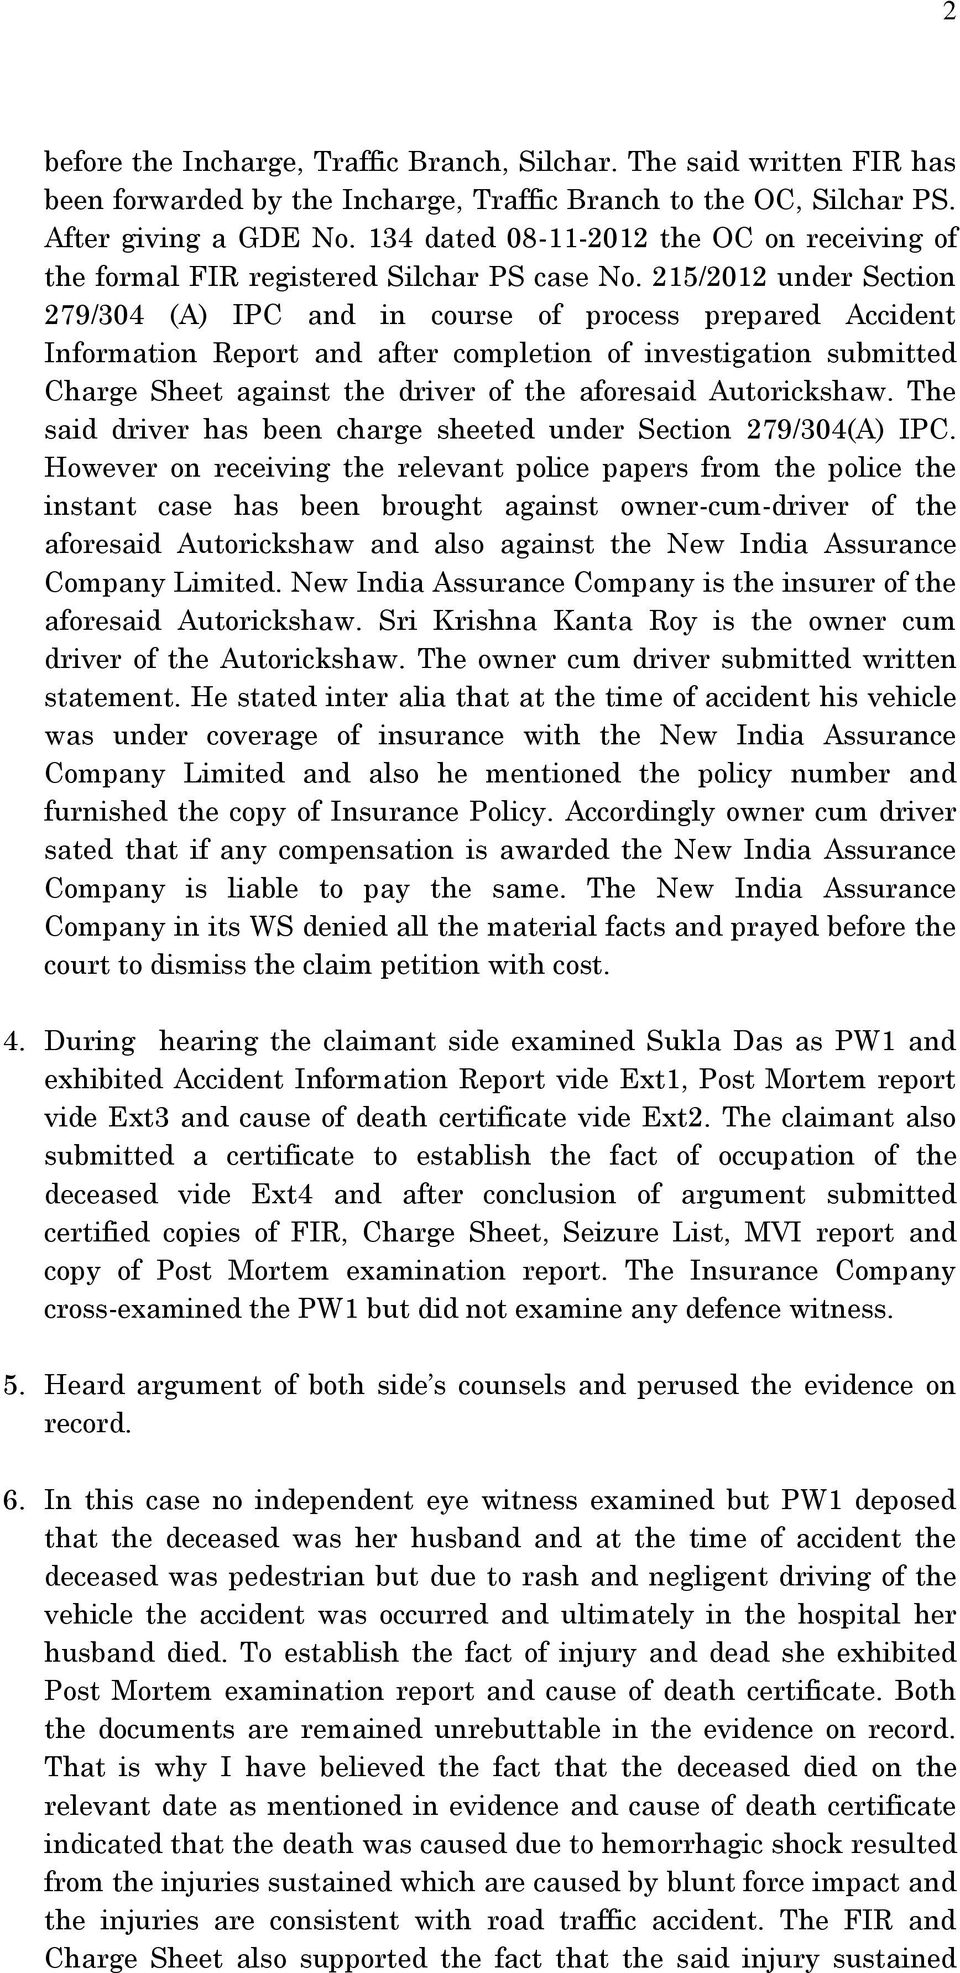 215/2012 under Section 279/304 (A) IPC and in course of process prepared Accident Information Report and after completion of investigation submitted Charge Sheet against the driver of the aforesaid